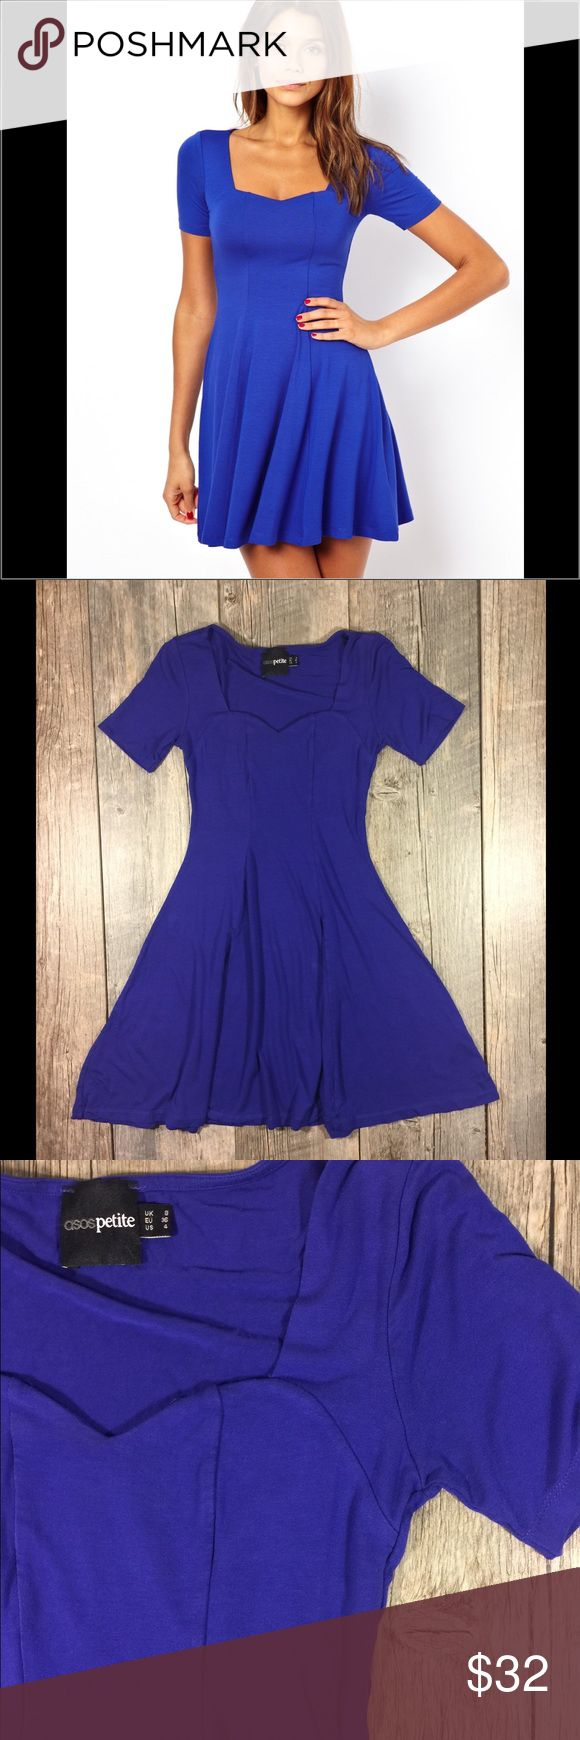 Asos petite blue purple sweetheart skater dress Asos petite blue purple sweetheart skater dress. Purplish blue color. Sweetheart neckline. 33 inches long. Waist is approx 22 inches. Bust is approx 27 inches before stretch. Viscose 5% elastane. Tag reads size 4 ASOS Petite Dresses